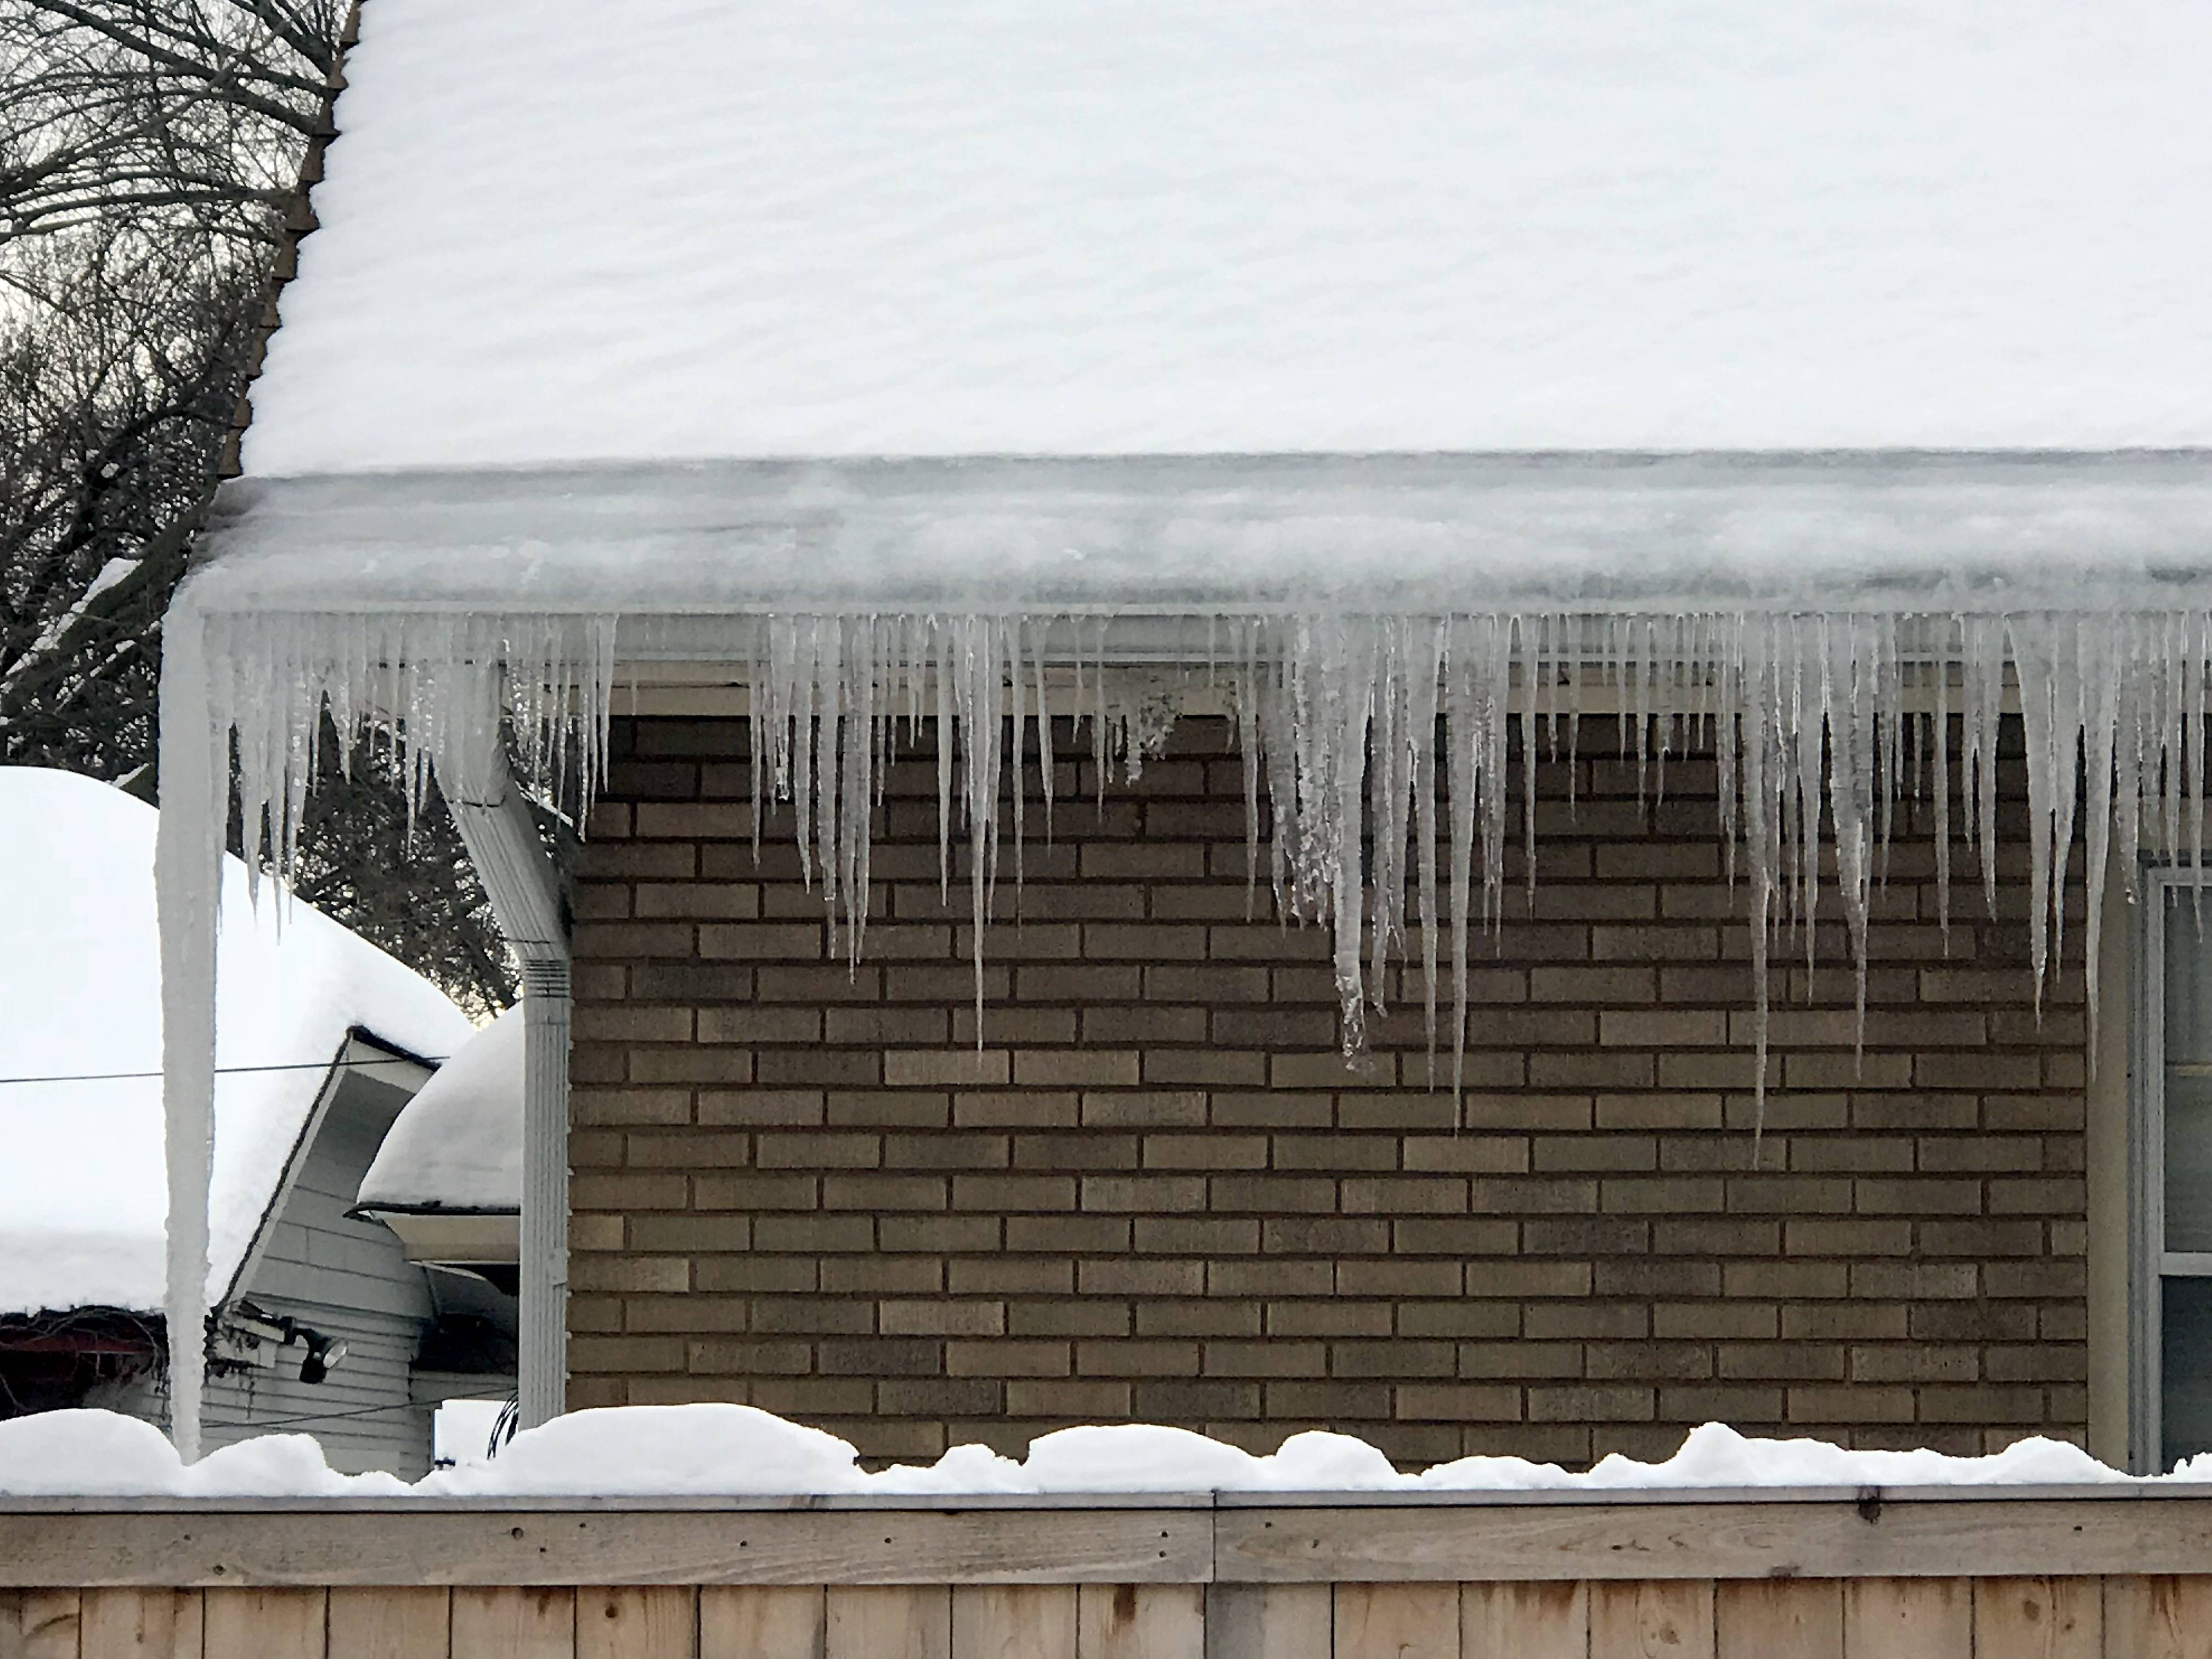 Experts disagree on whether you should remove icicles like these in Elgin, with some saying doing so could damage gutters or siding. But with a thaw and rain coming this week, they might not be the biggest issue your home will have.